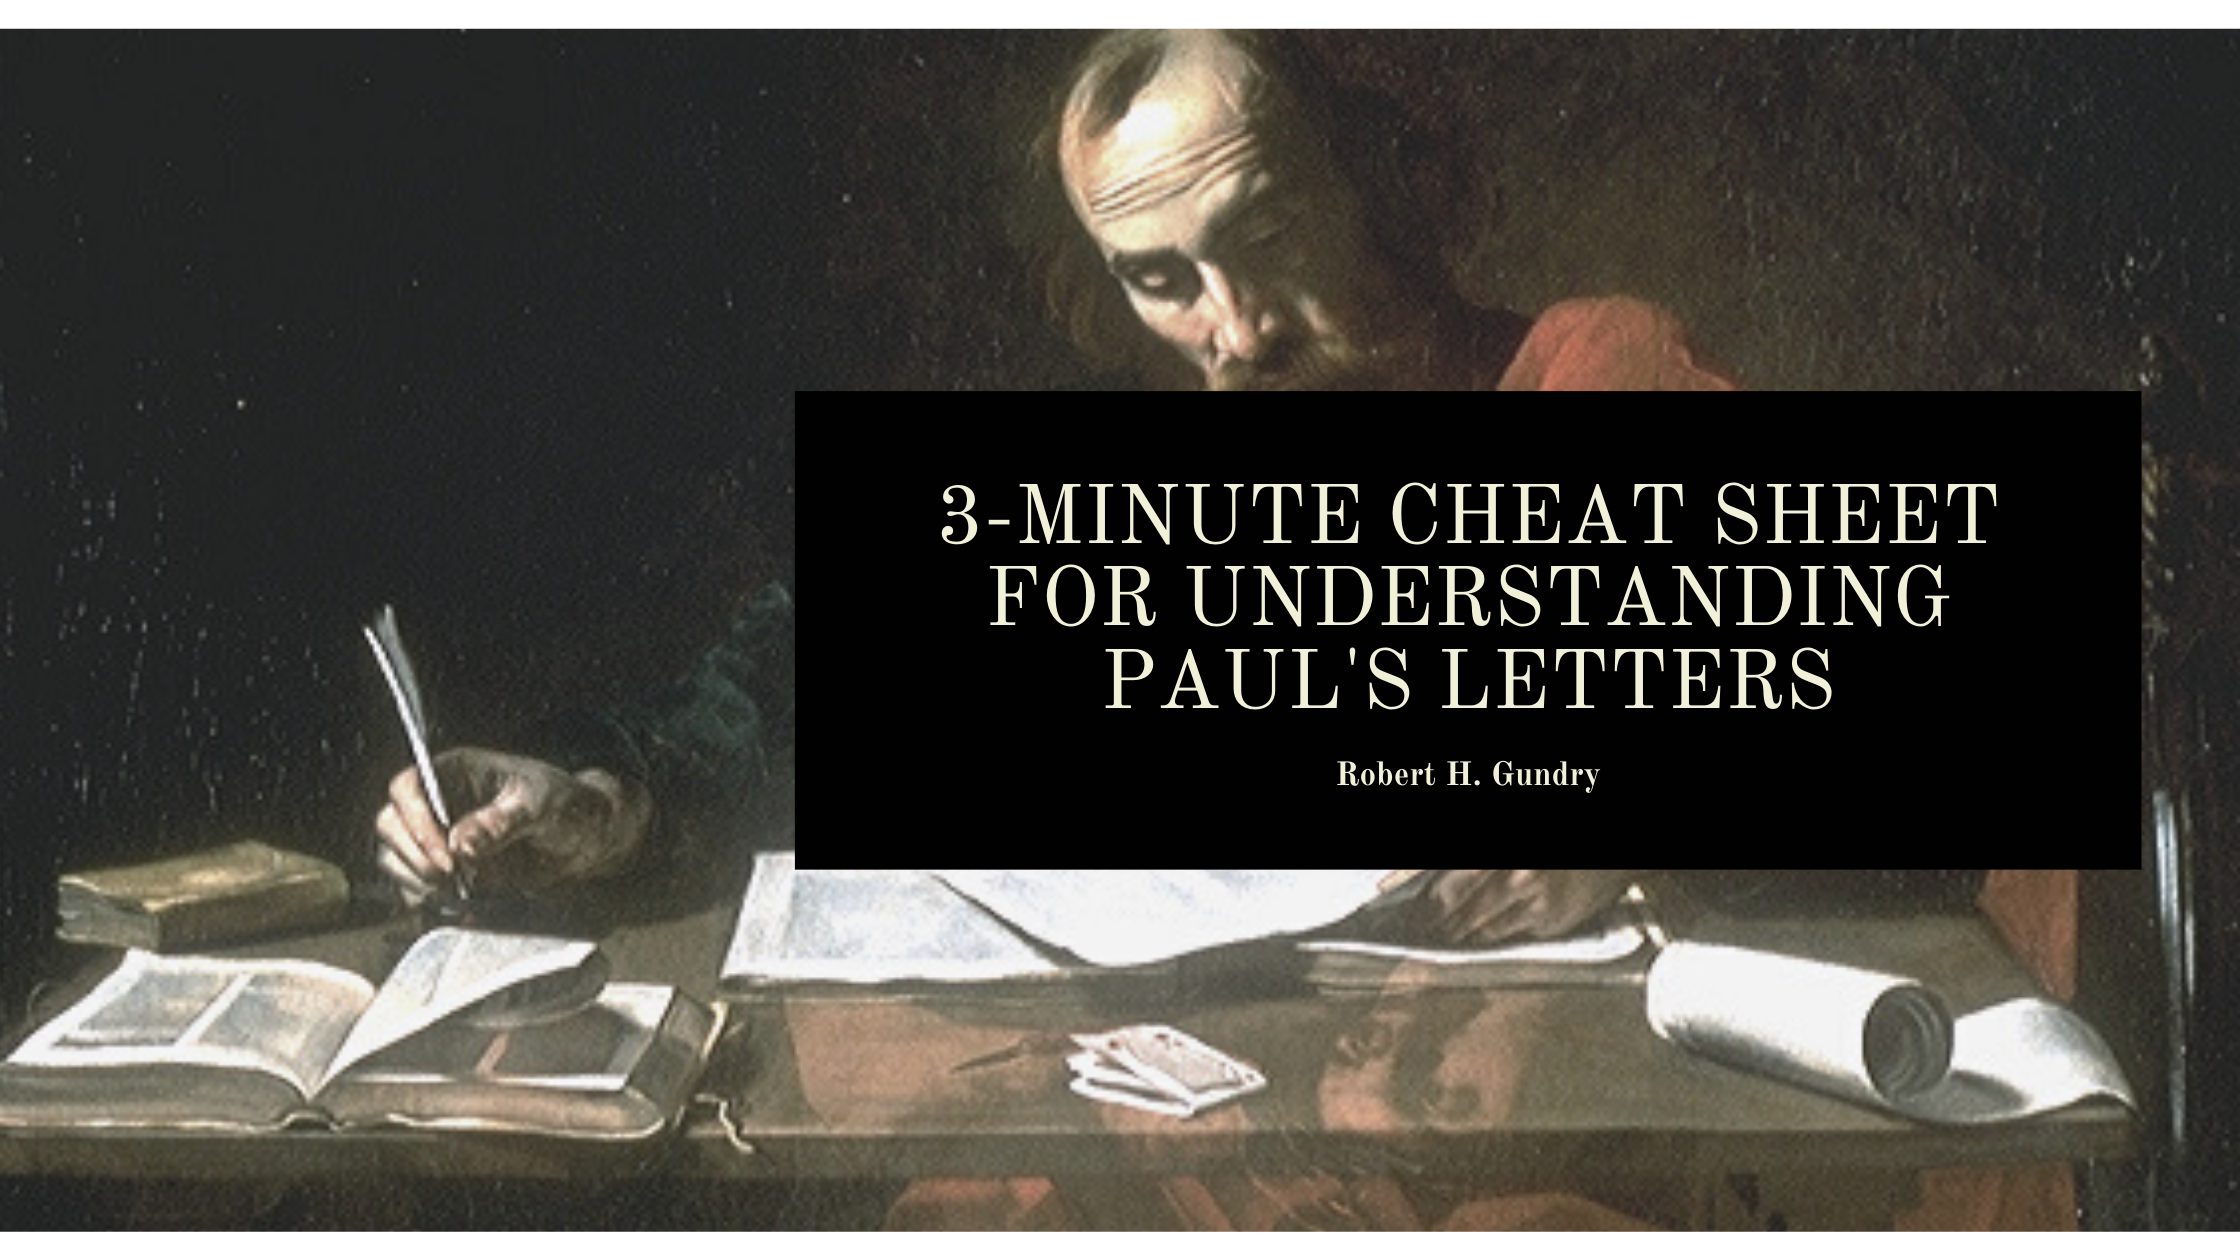 The 3-Minute Cheat Sheet for Understanding Paul's Letters